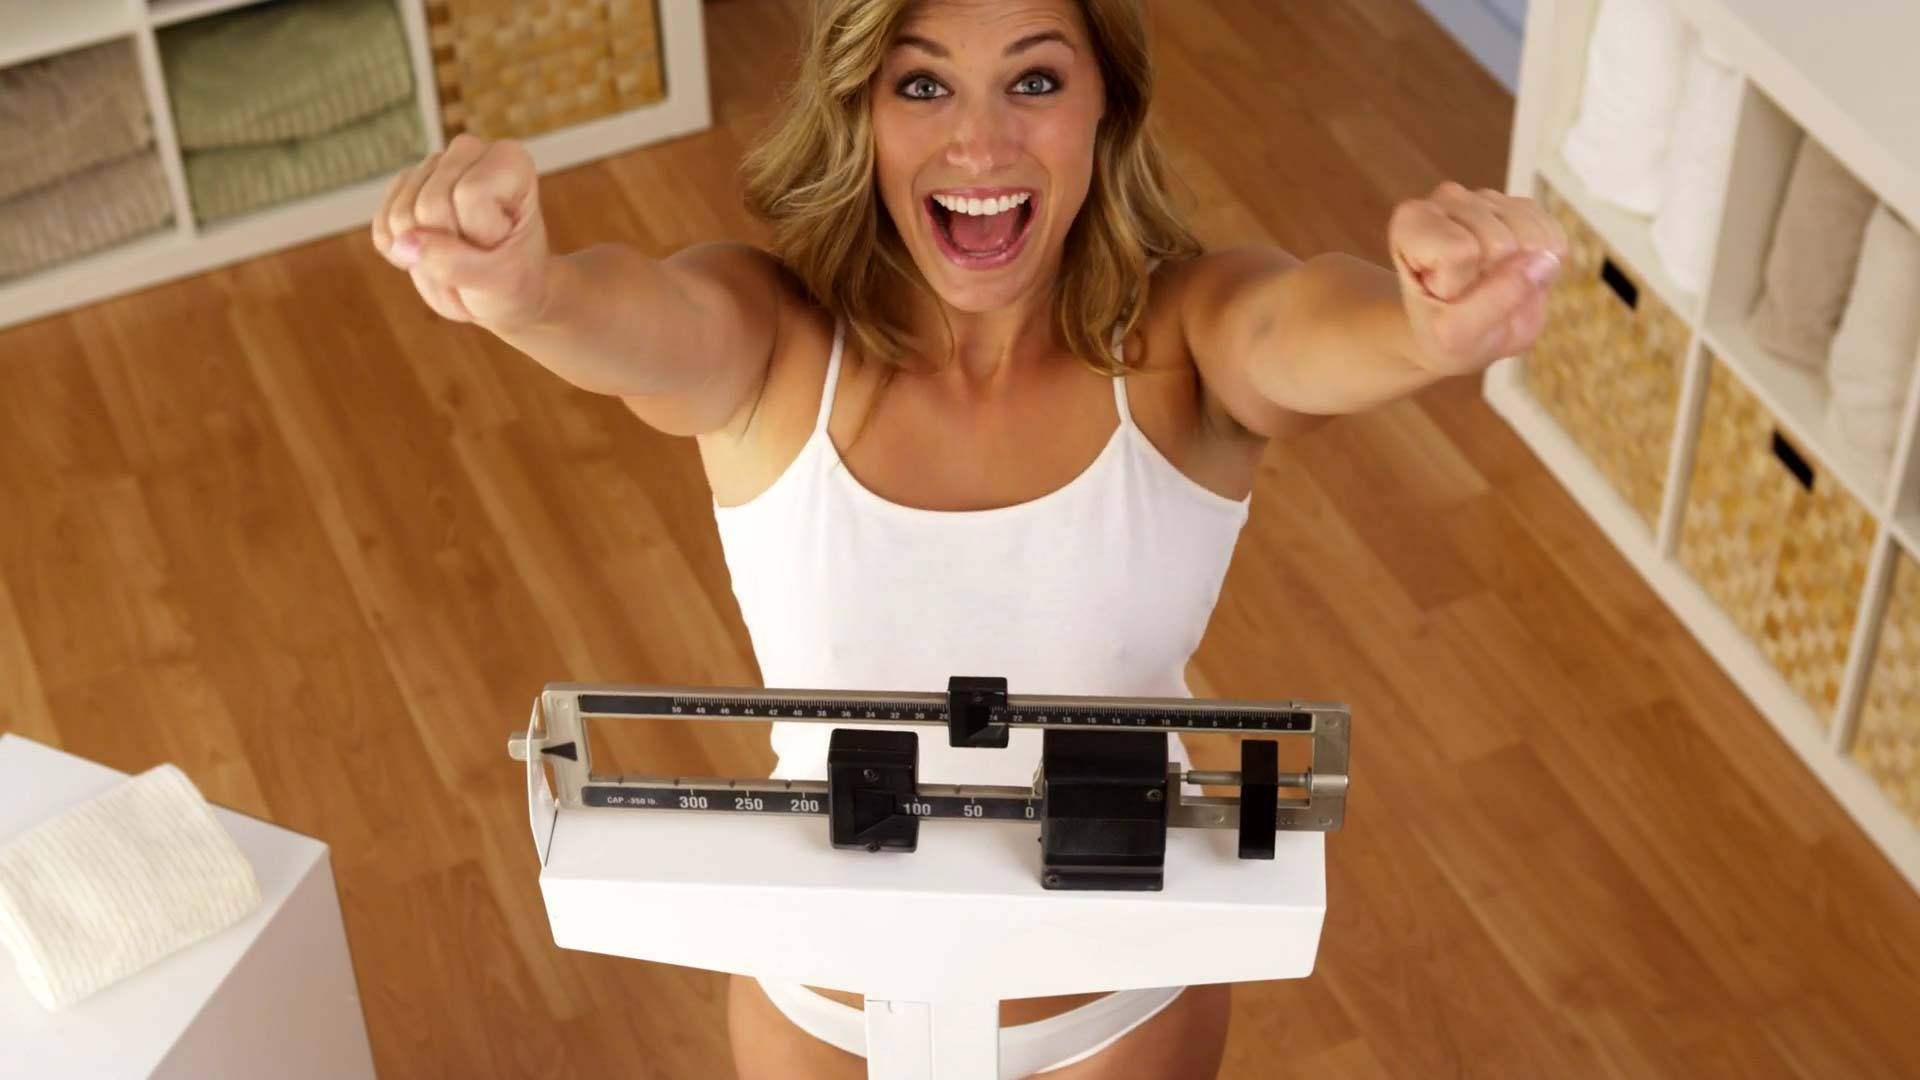 Benefits Of The At Home Weight Loss Program Slim4life Weight Loss